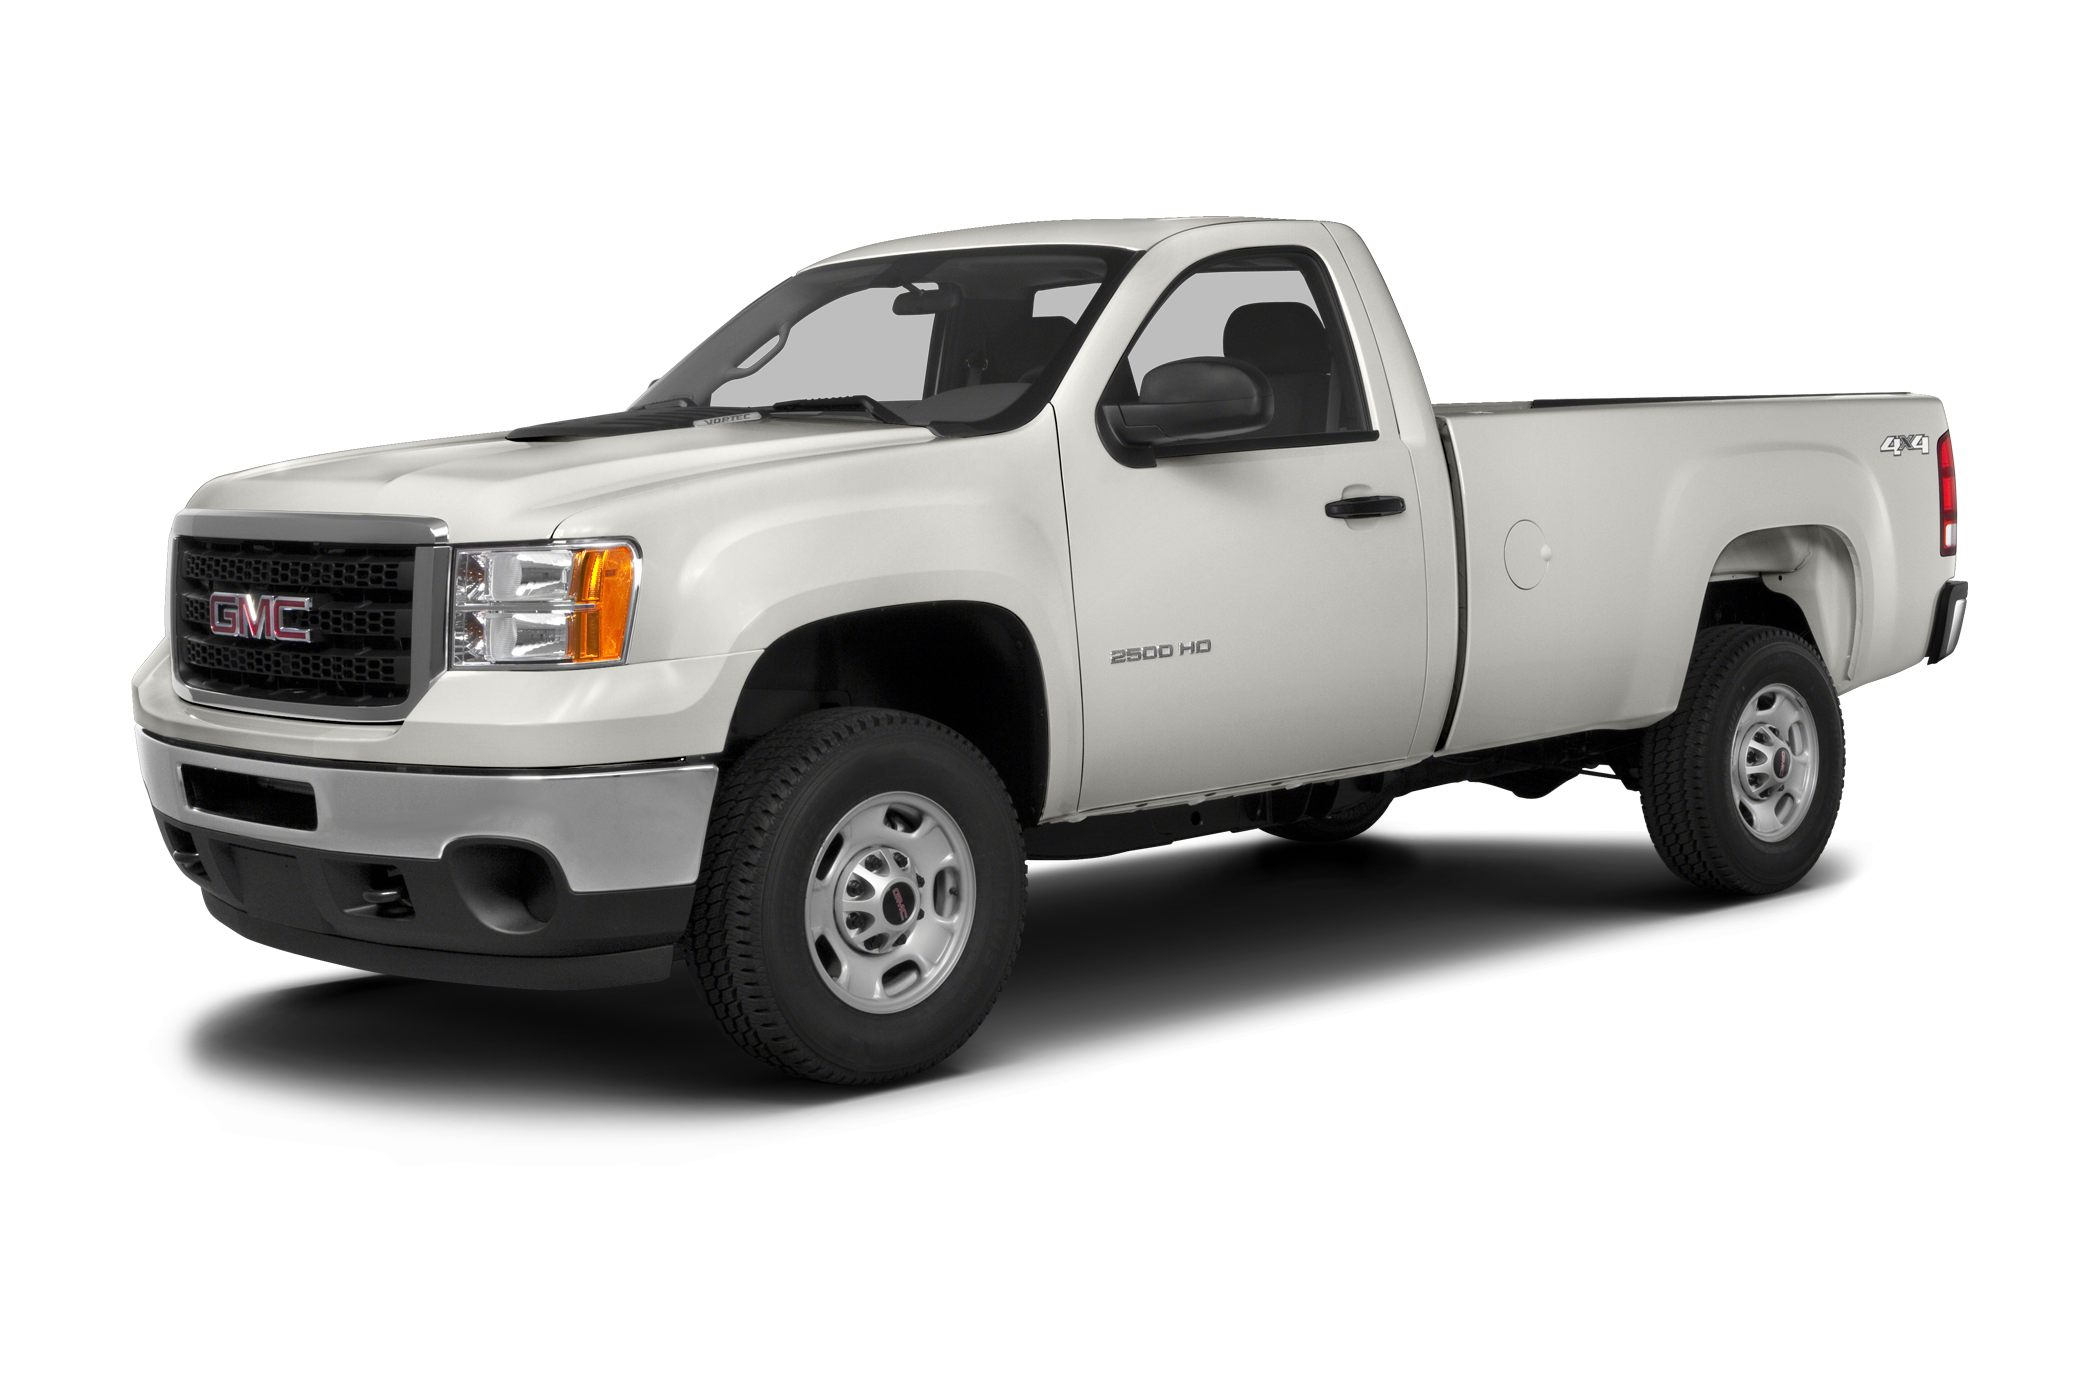 used in new for main sale pass eagle gmc brown sierra dealer